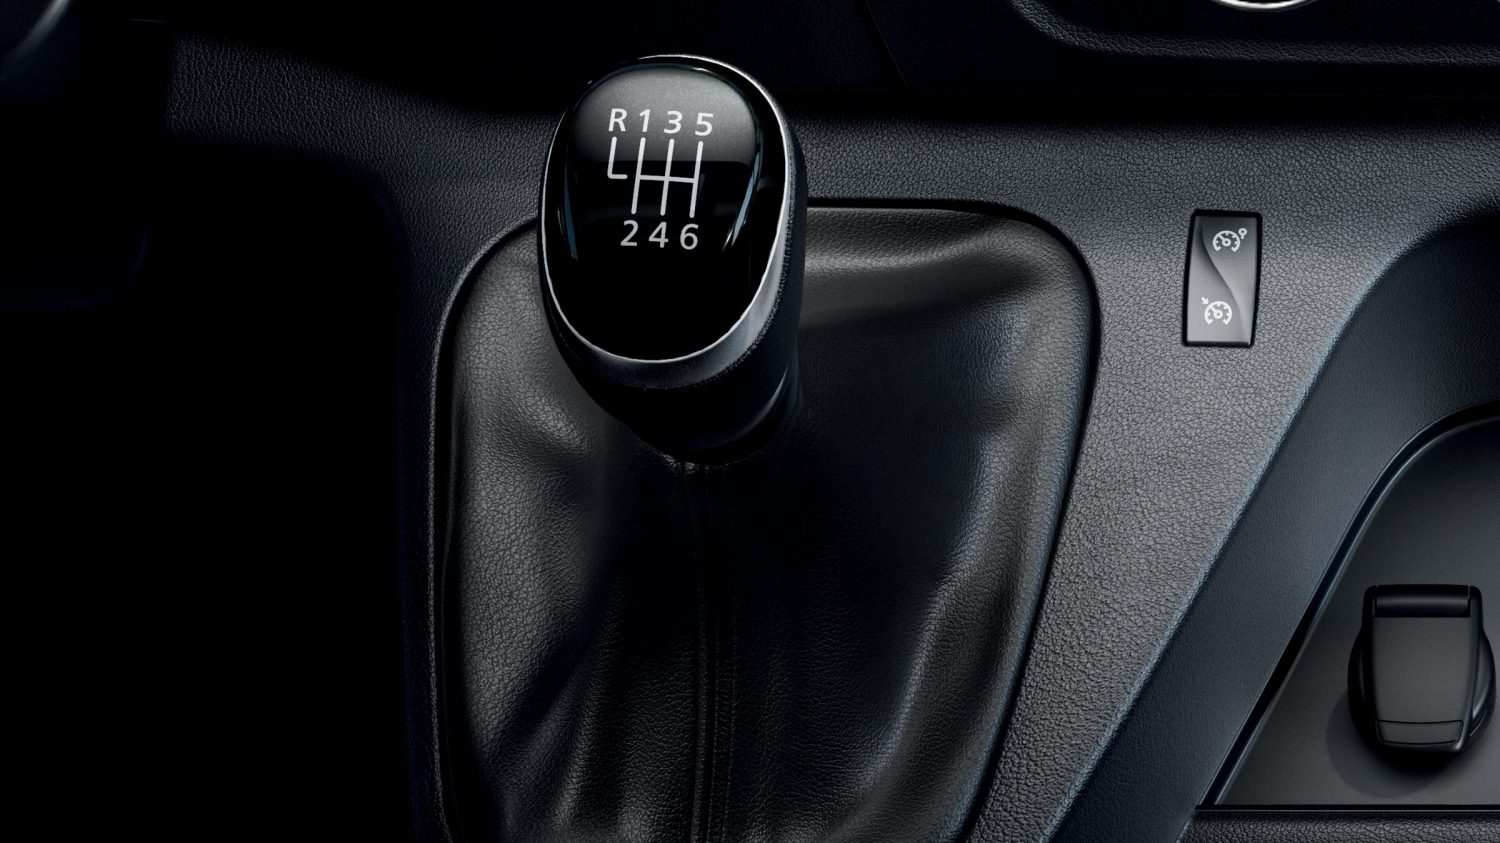 Nissan NV400 - 6-speed manual transmission shifter